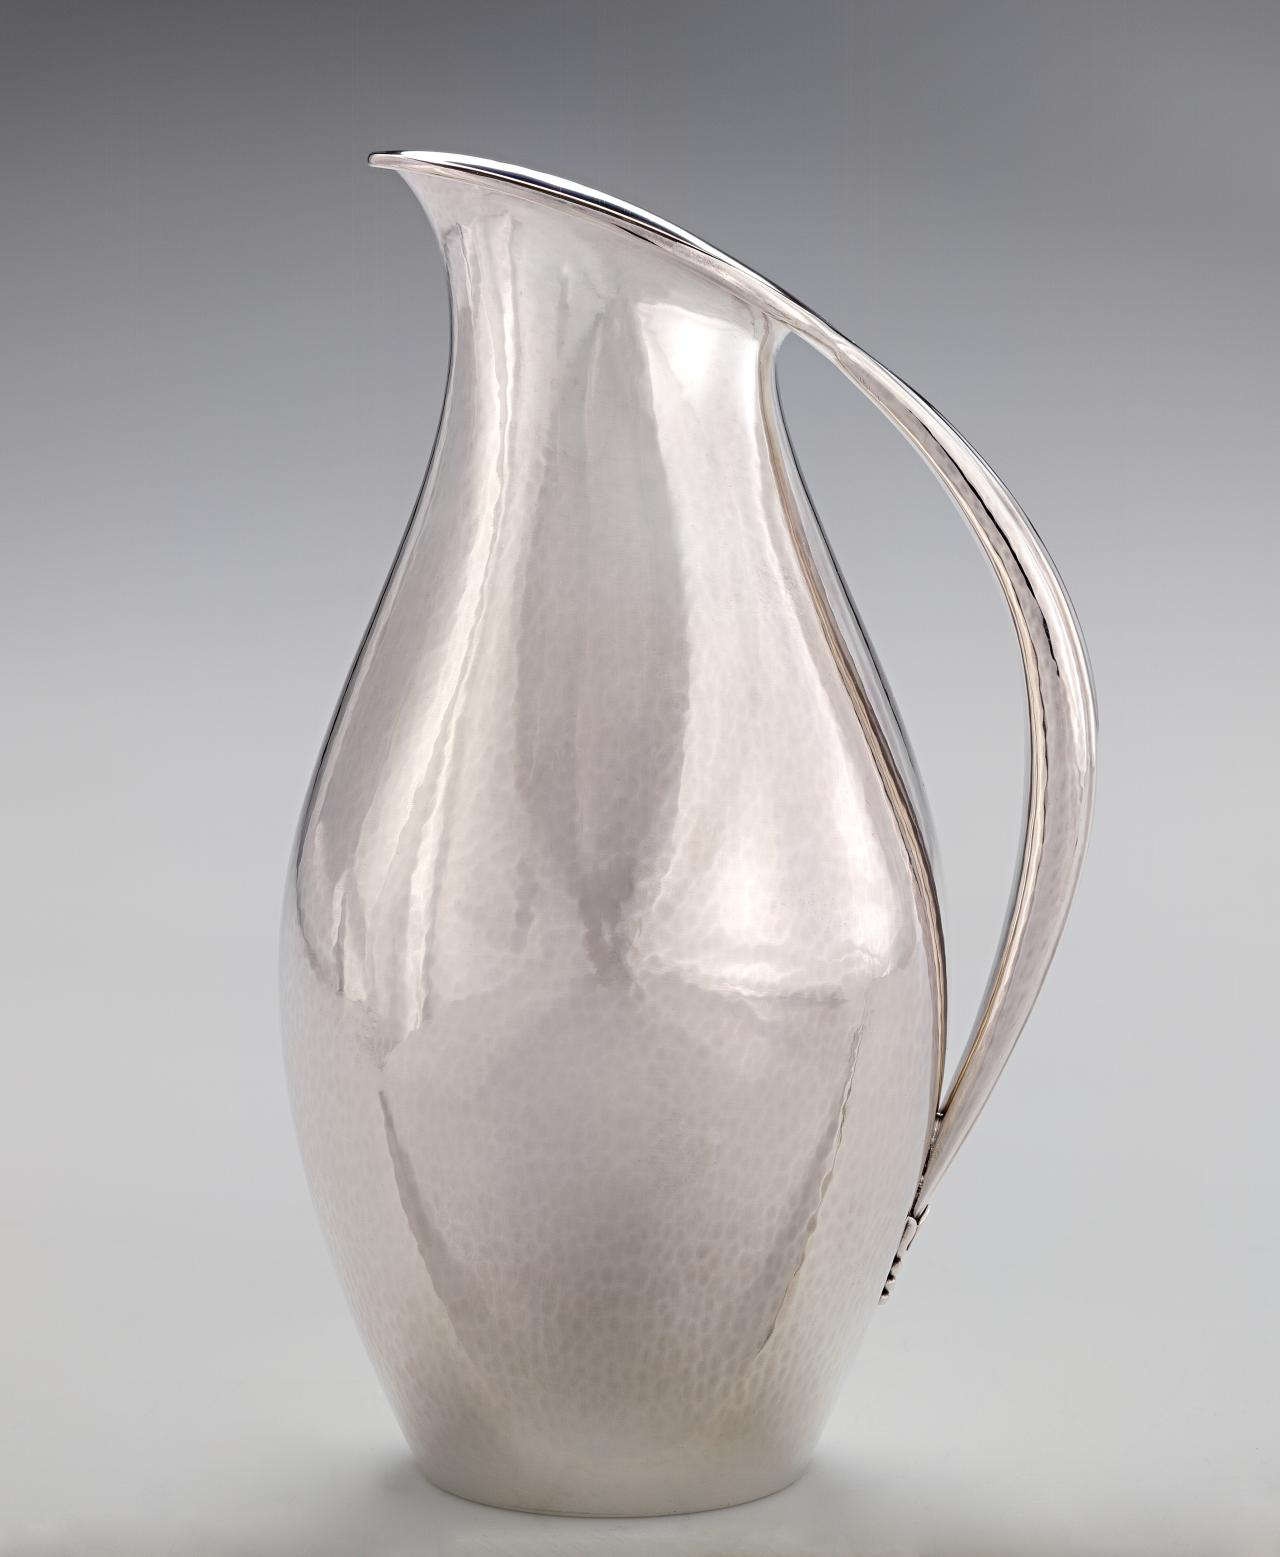 Pitcher, model no. 432